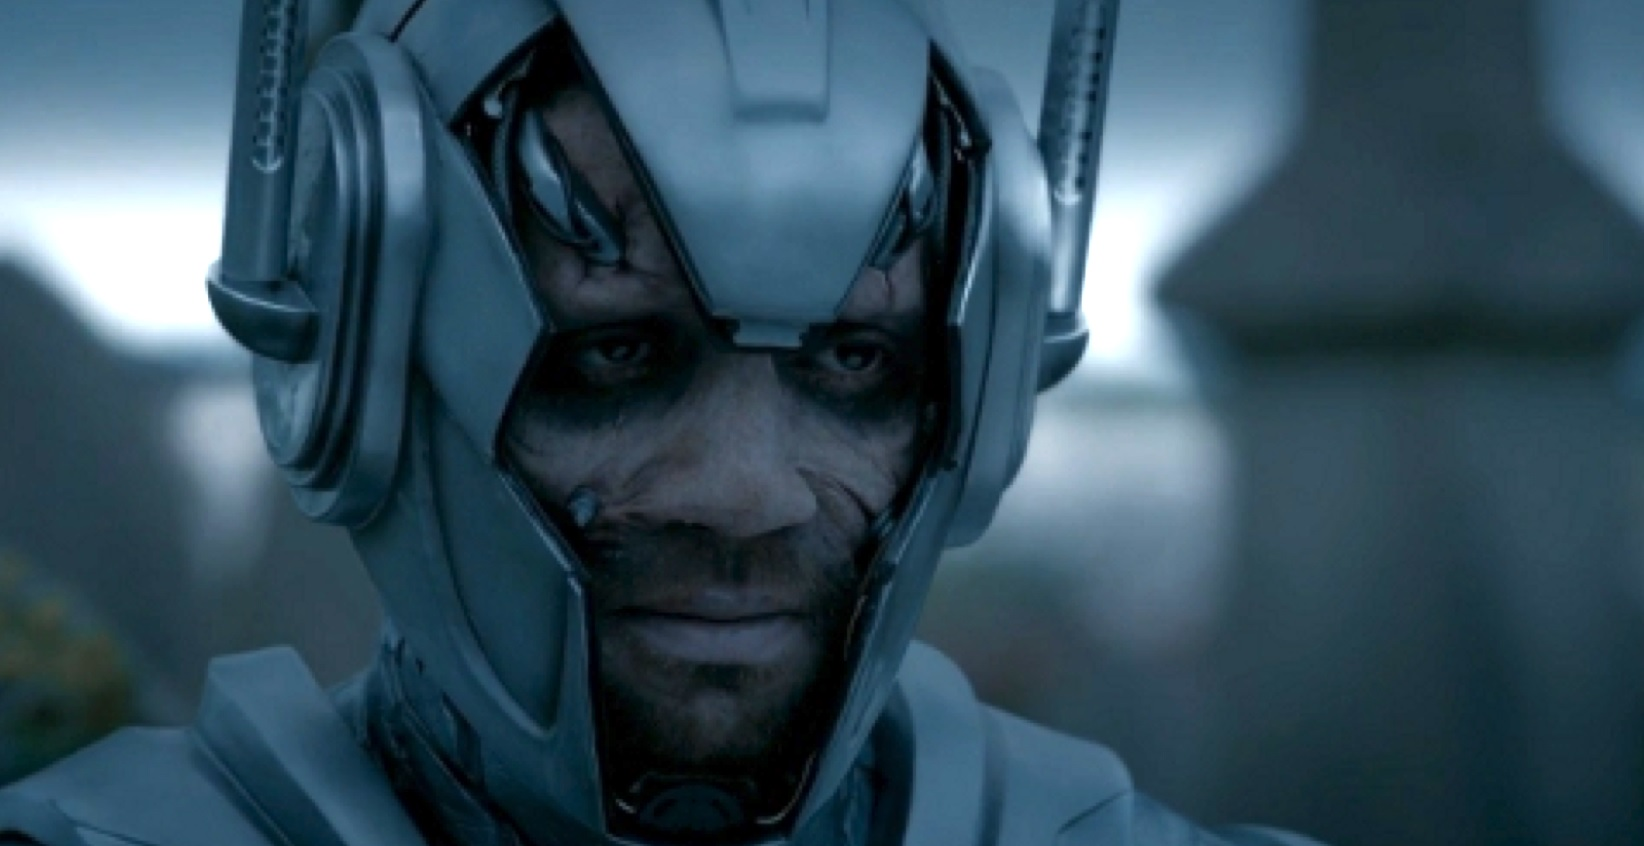 Sam Anderson as Danny Pink, as a Cyberman, in Doctor Who.